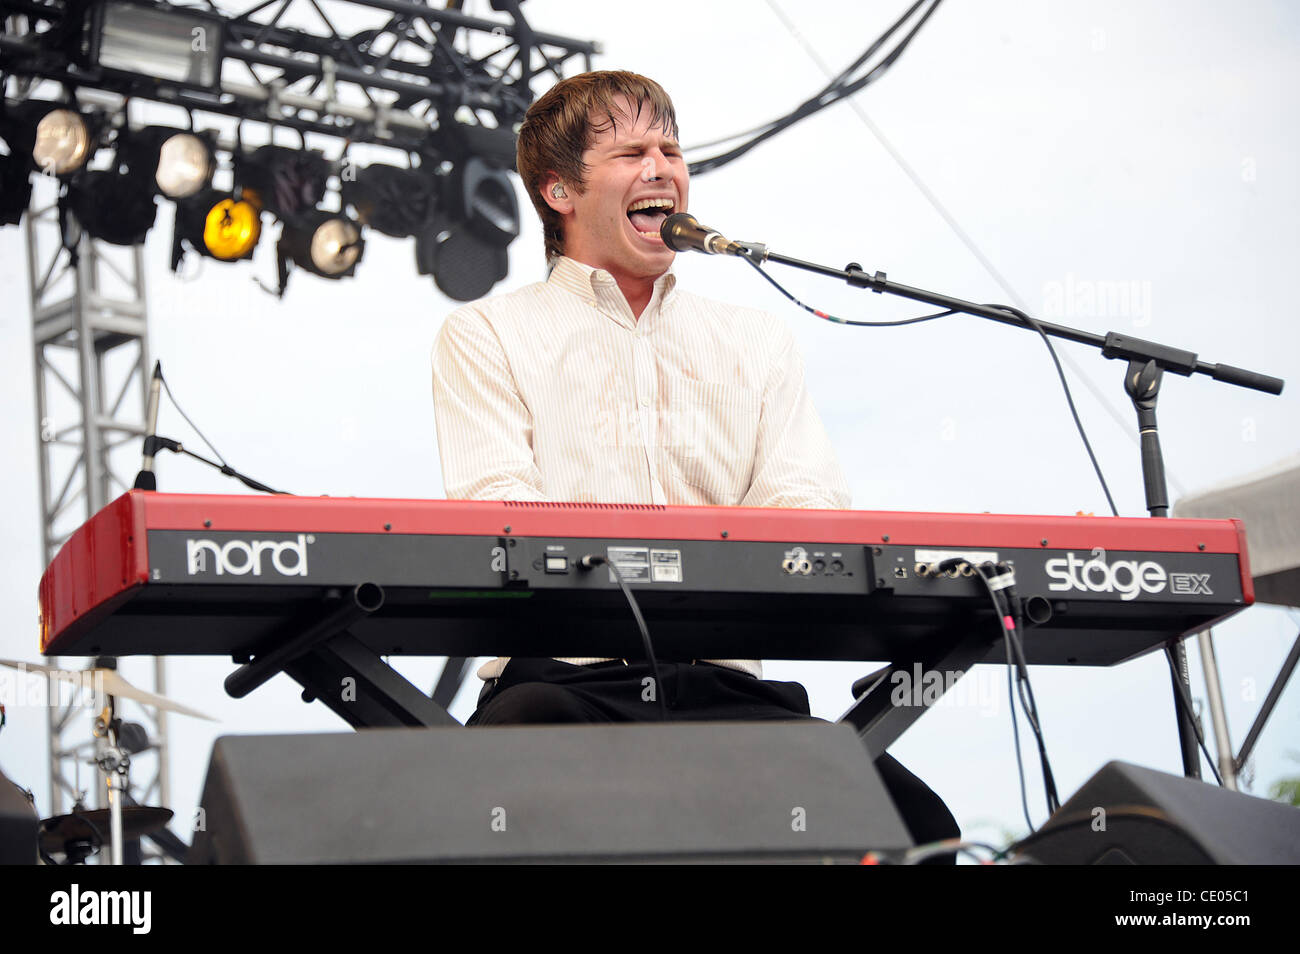 Aug 5, 2011 - Chicago, Illinois; USA - Musician MARK FOSTER of the band Foster The People performs live as part - Stock Image